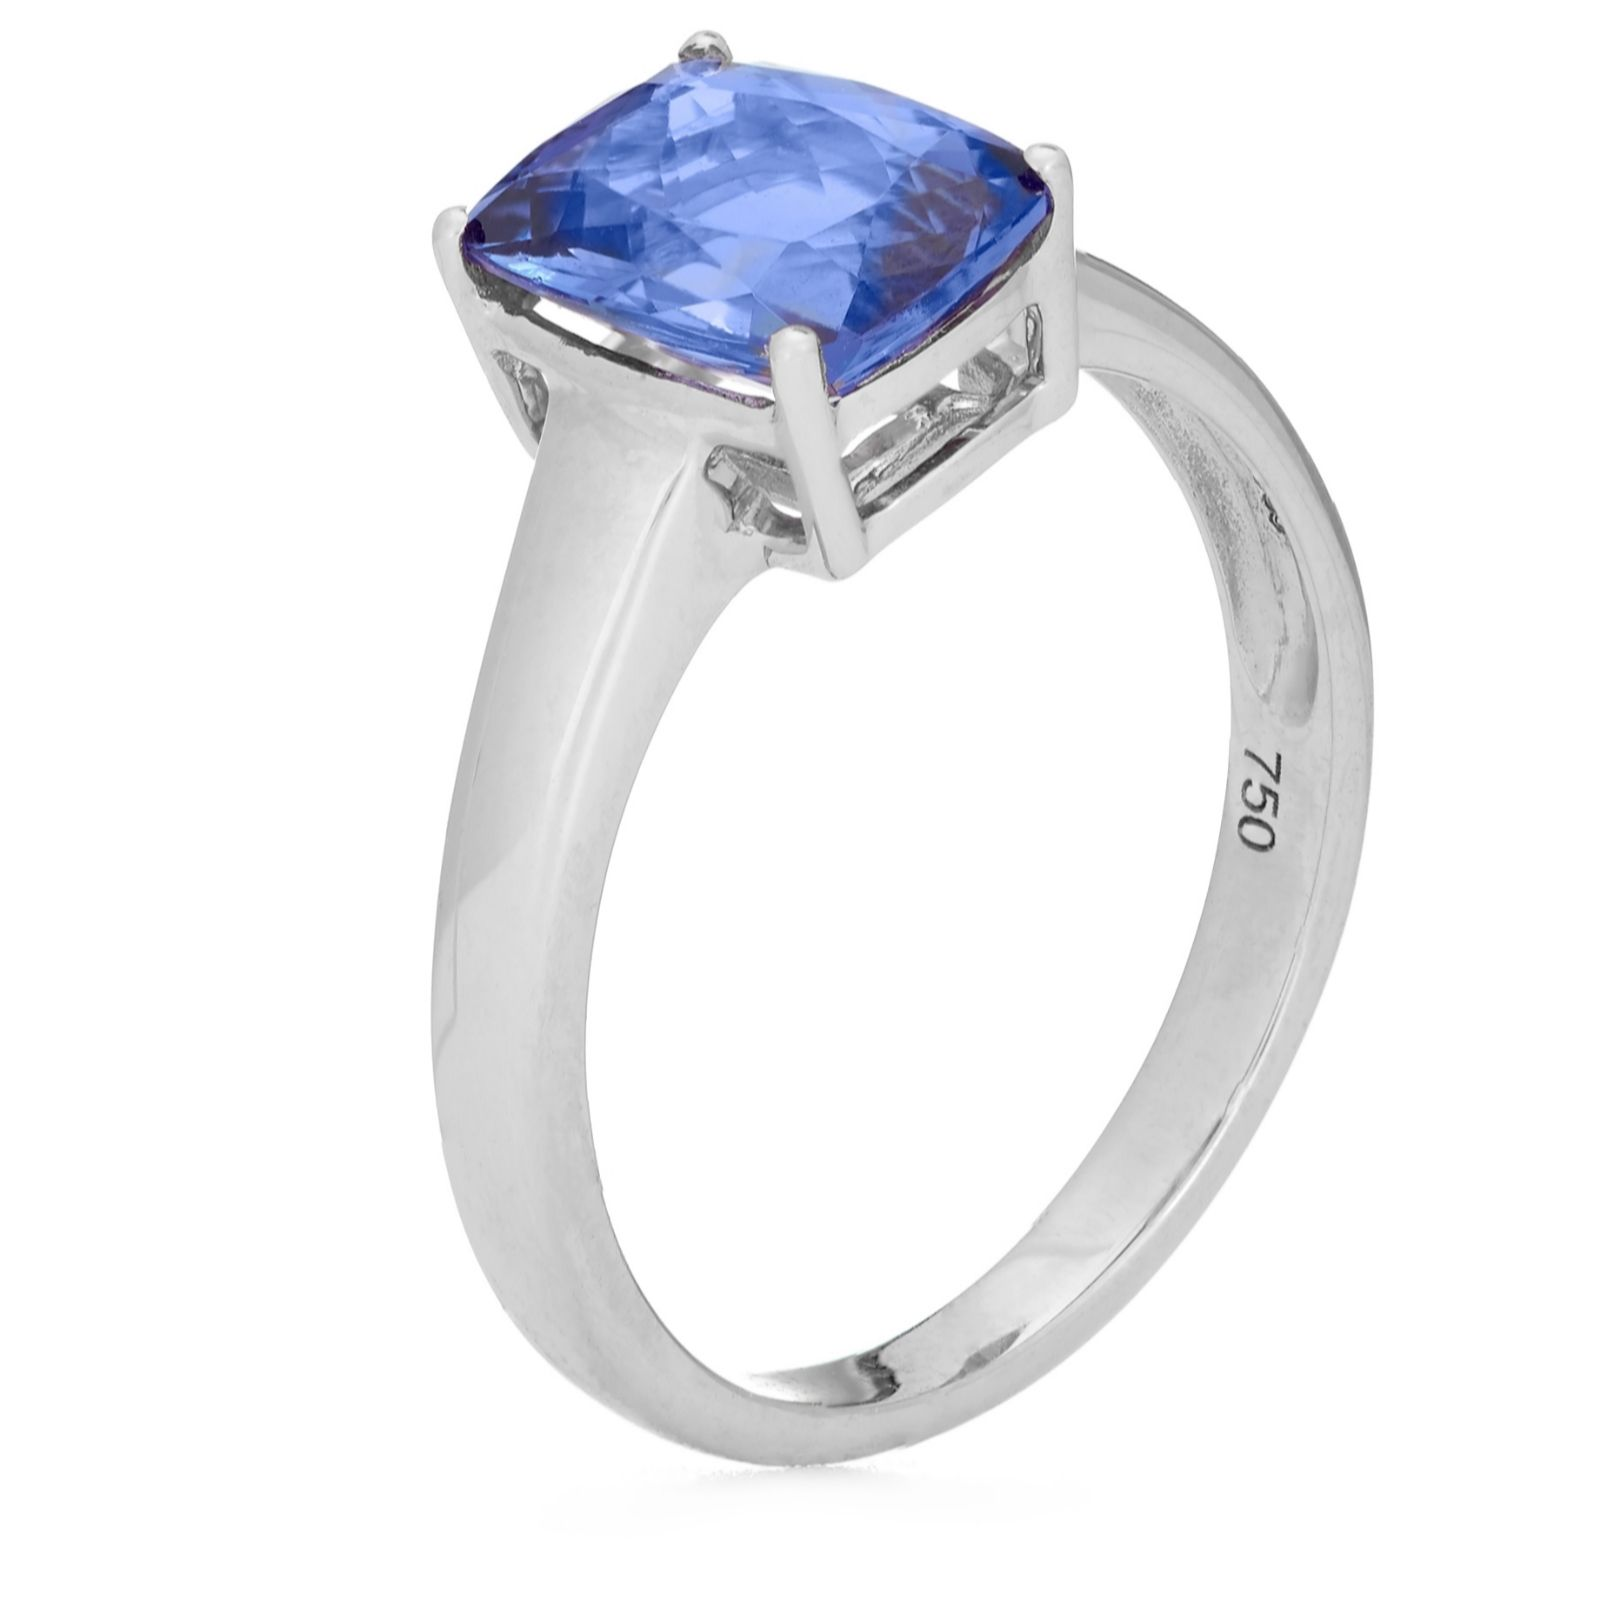 wide frost eliise rings minimalist by with silver jewellery fine products topaz stone maar blue light